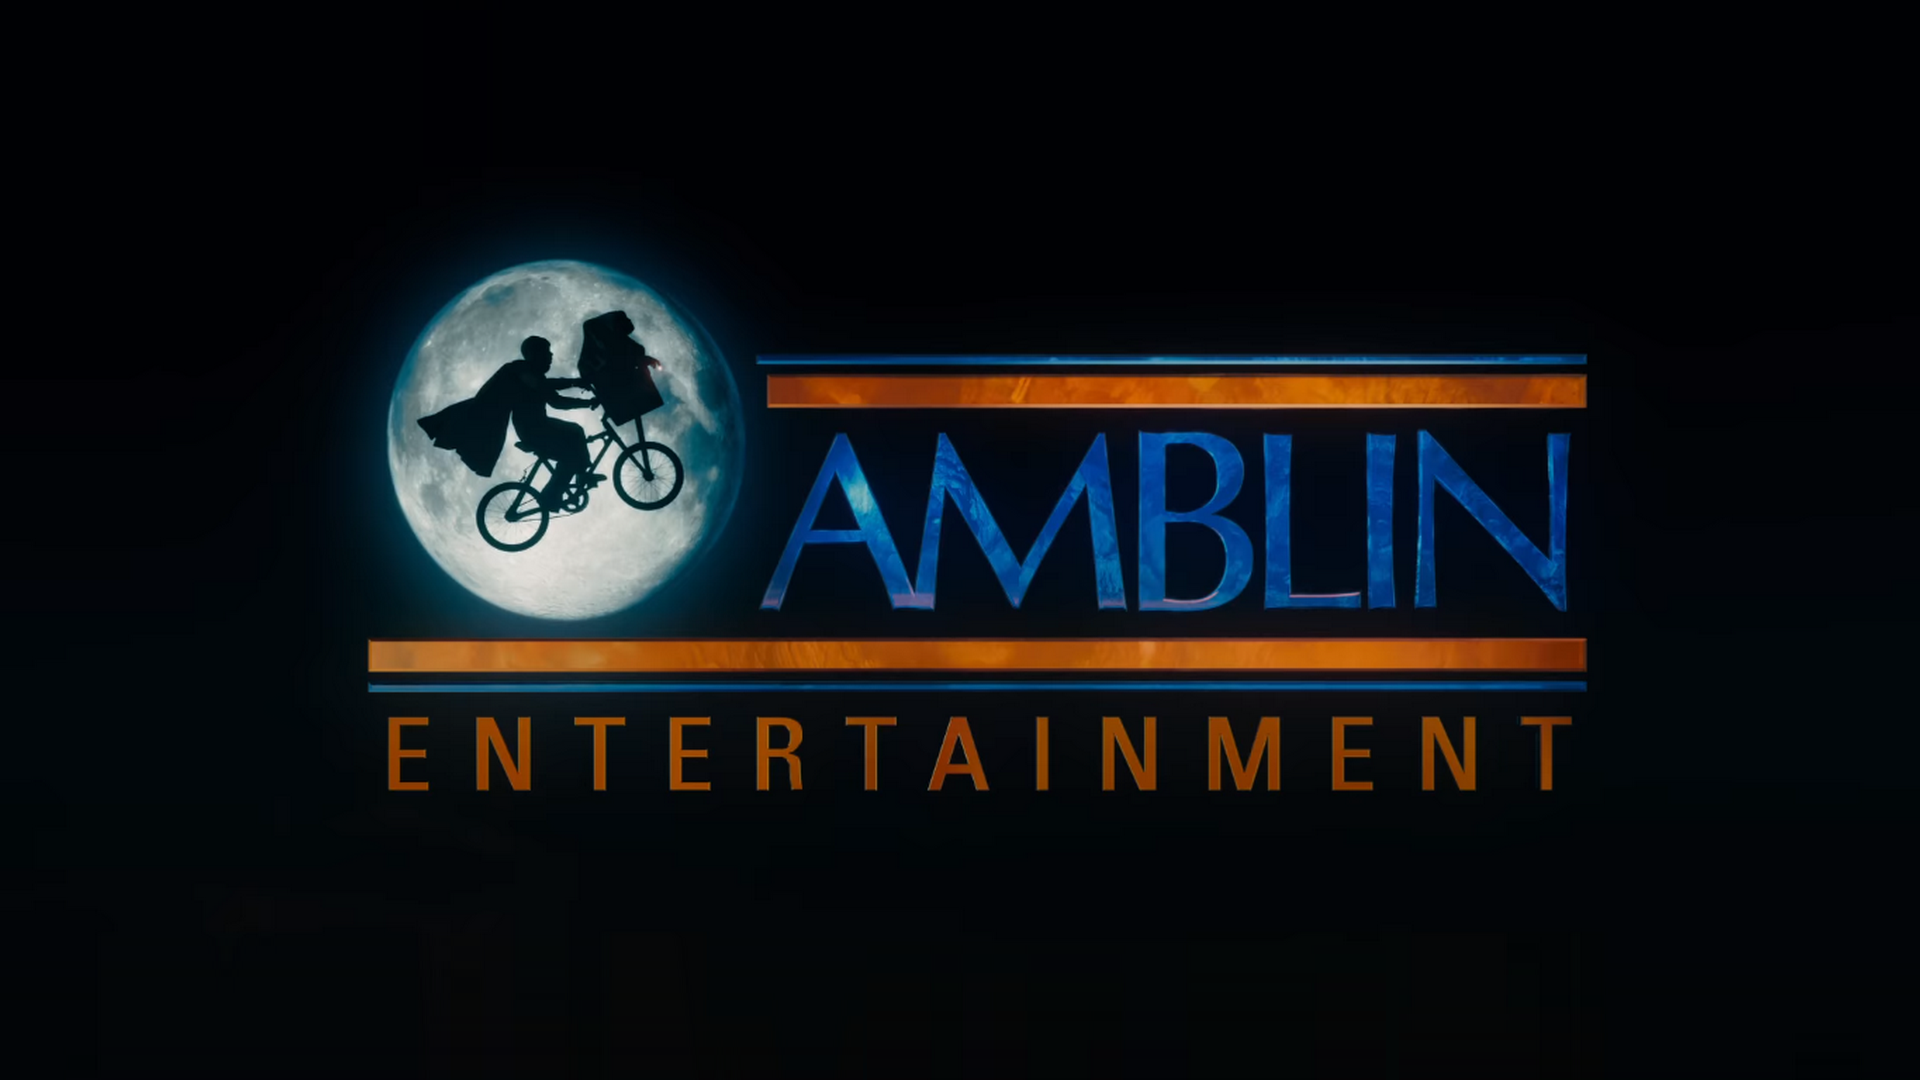 Amblin entertainment logo 2016